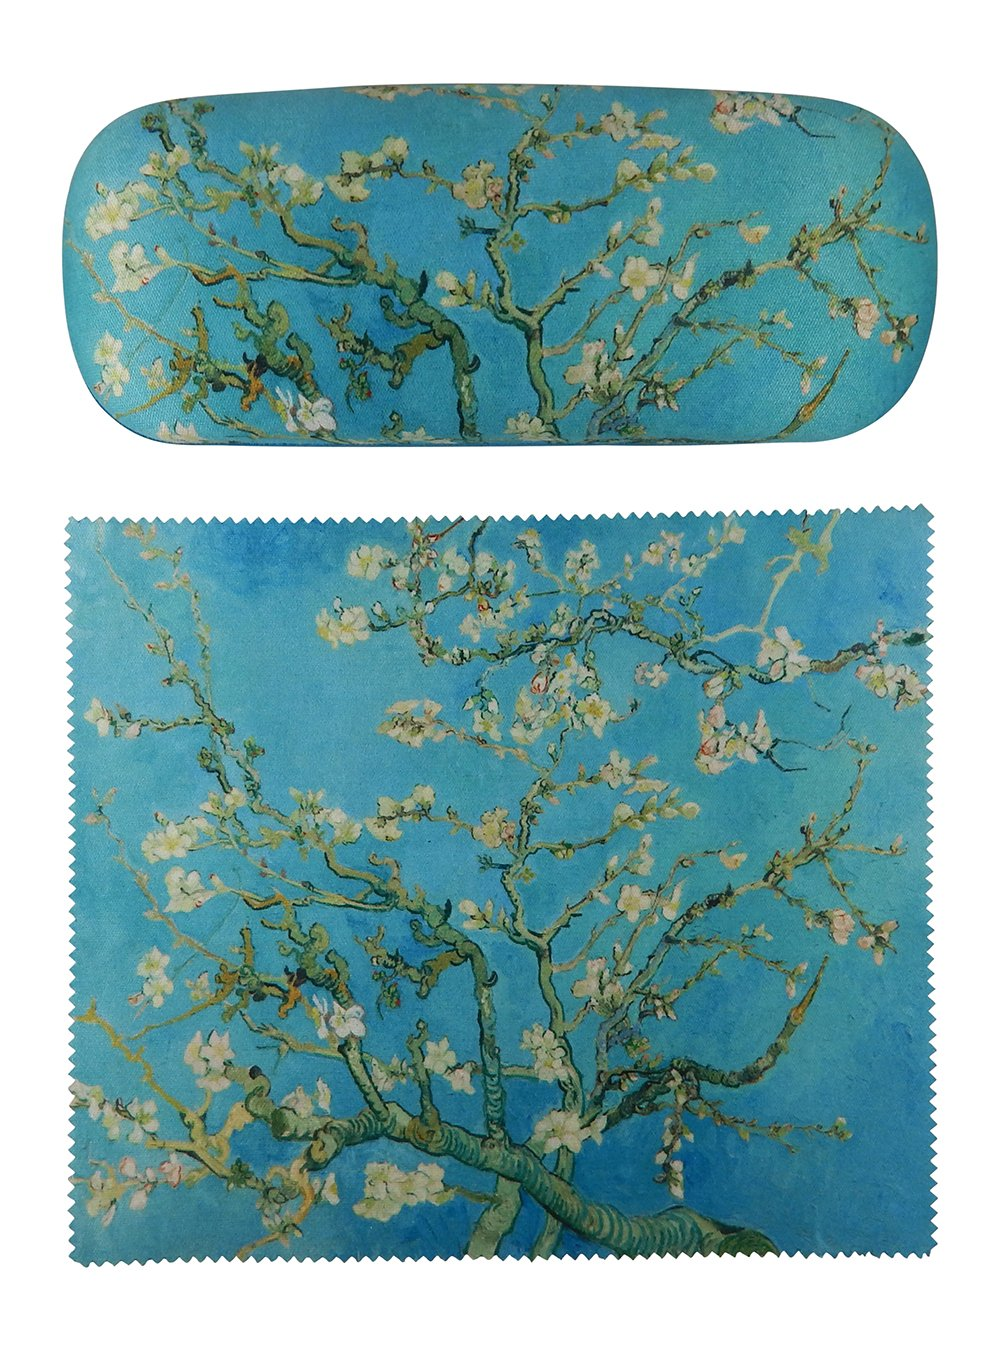 Van Gogh Almond Blossoms Painting Art premium quality eyeglass case and matching Almond Blossoms Painting art microfiber eyeglasses cleaning cloth